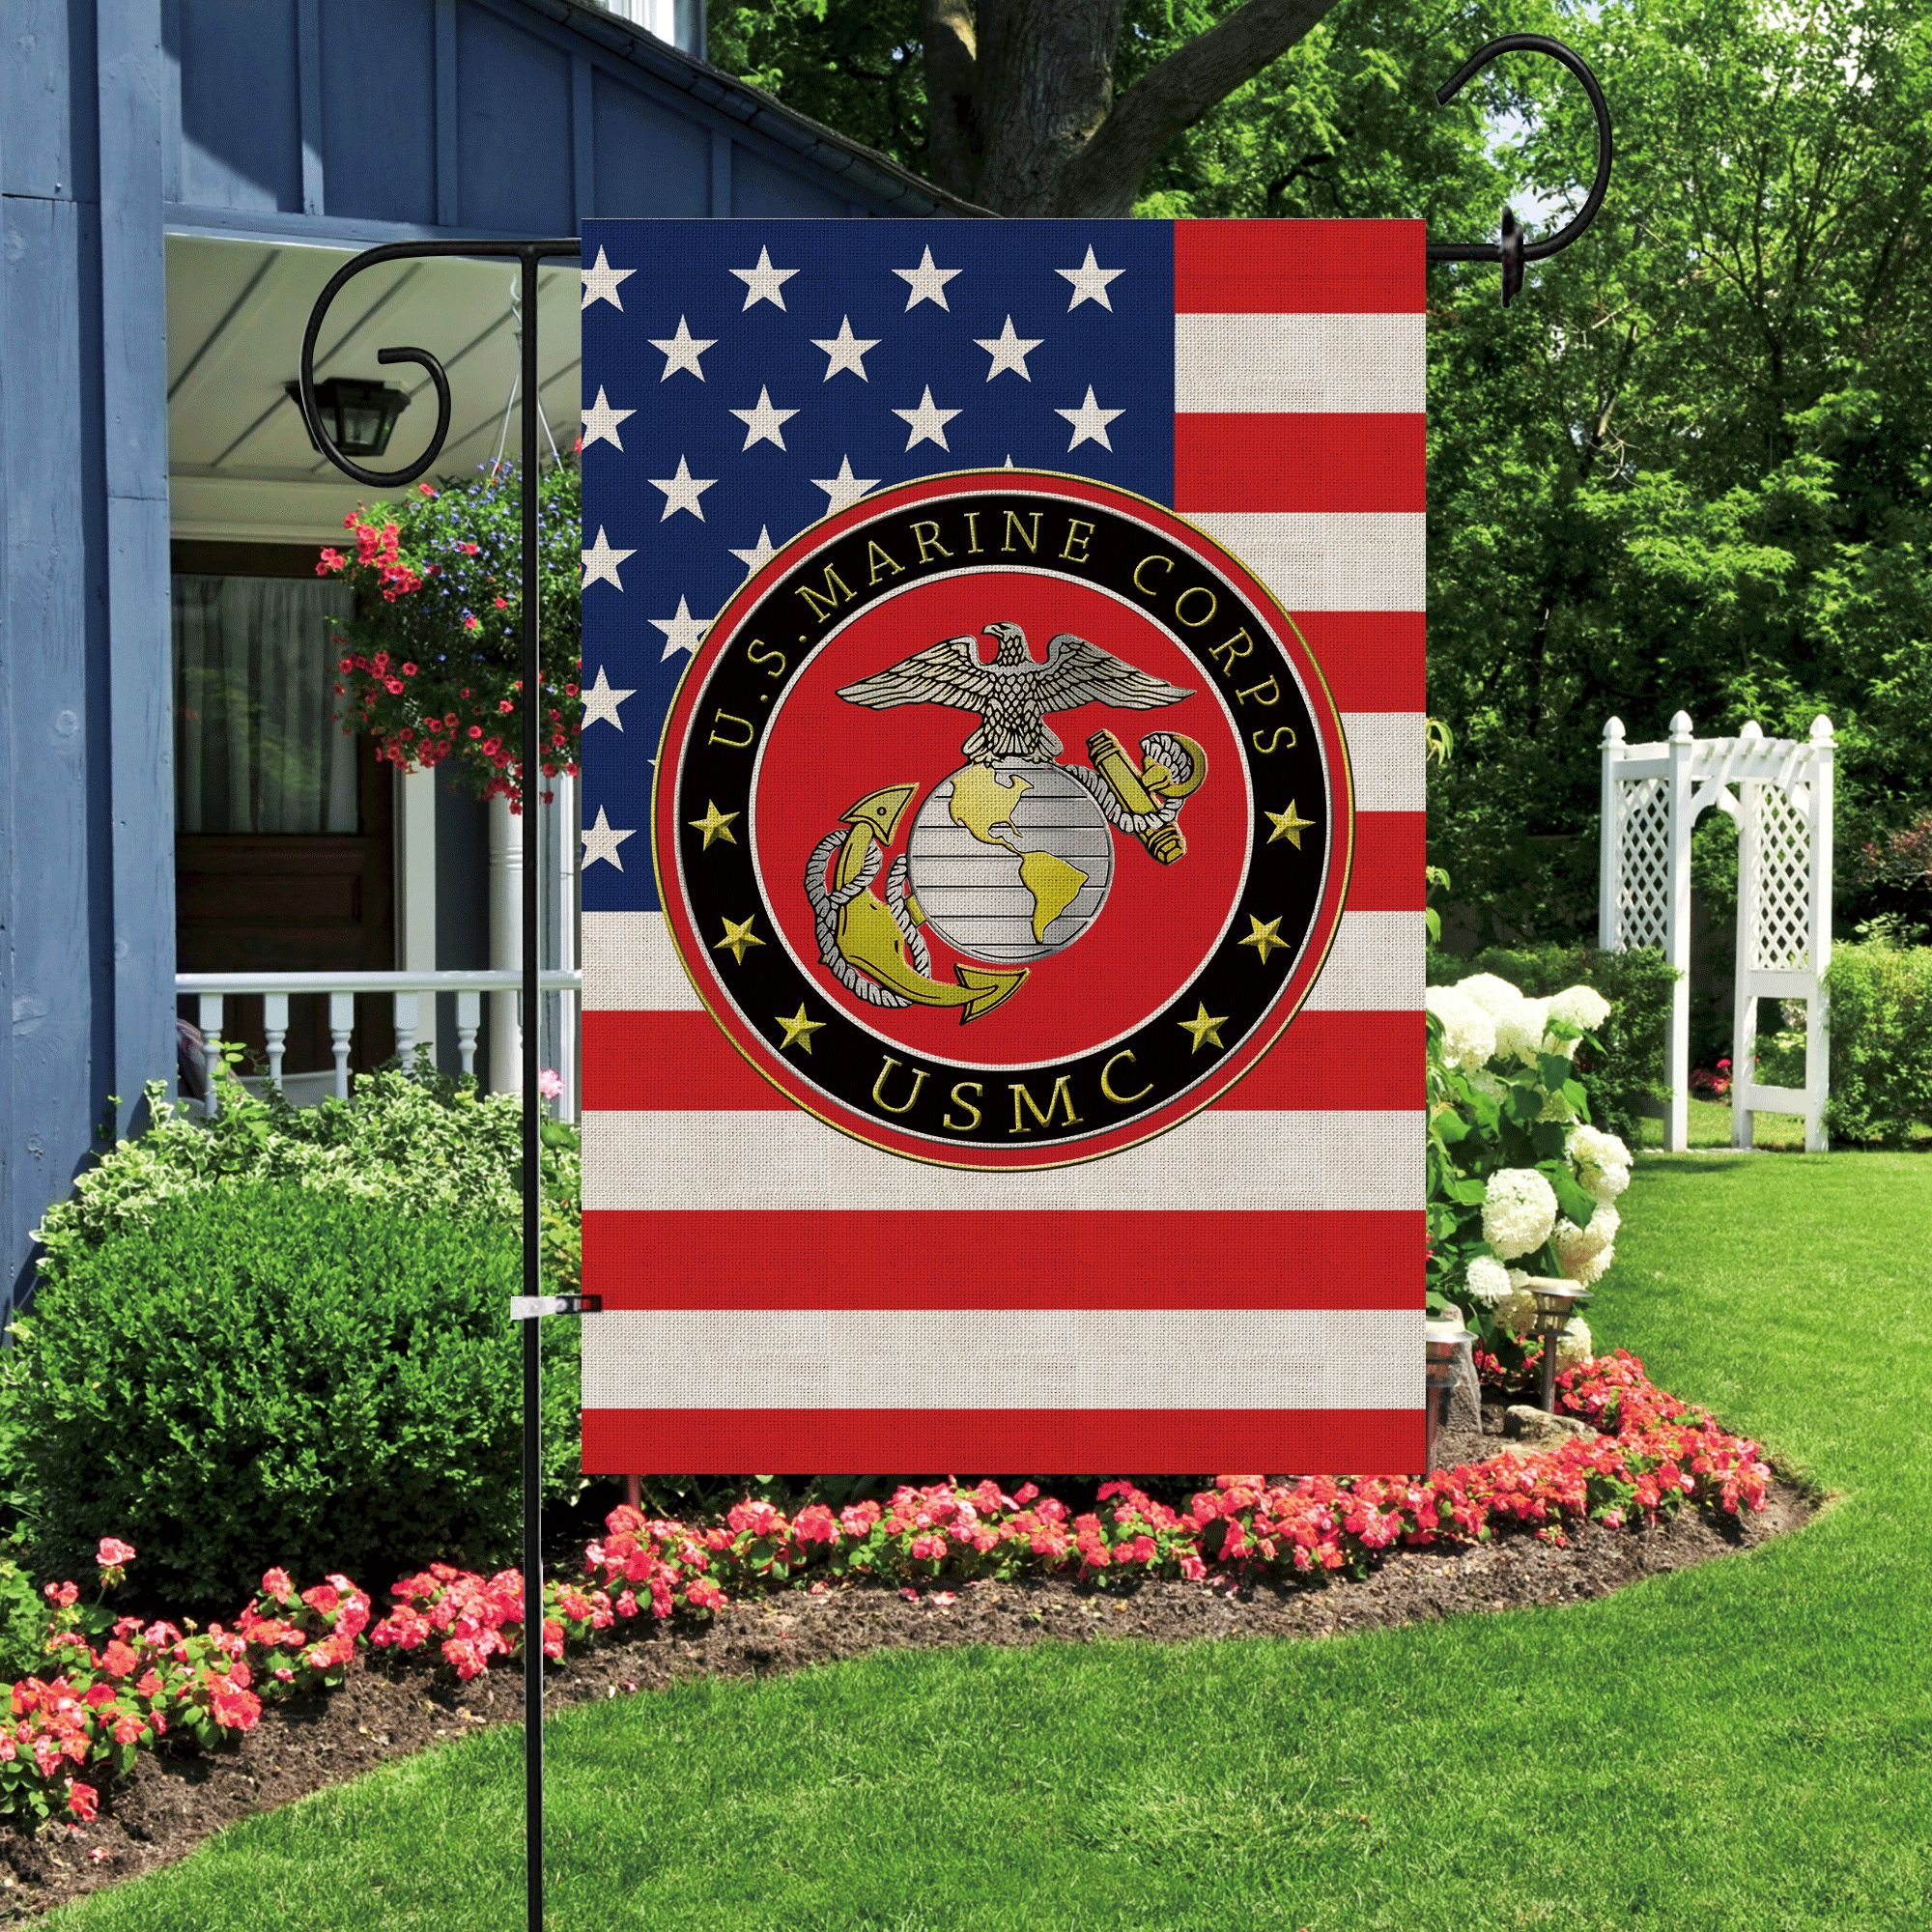 Bonsai Tree marine corps usmc seasonal burlap garden flag Banner decorative outdoor Double Sided yard flag 12 x 18 prime by Bonsai Tree (Image #5)